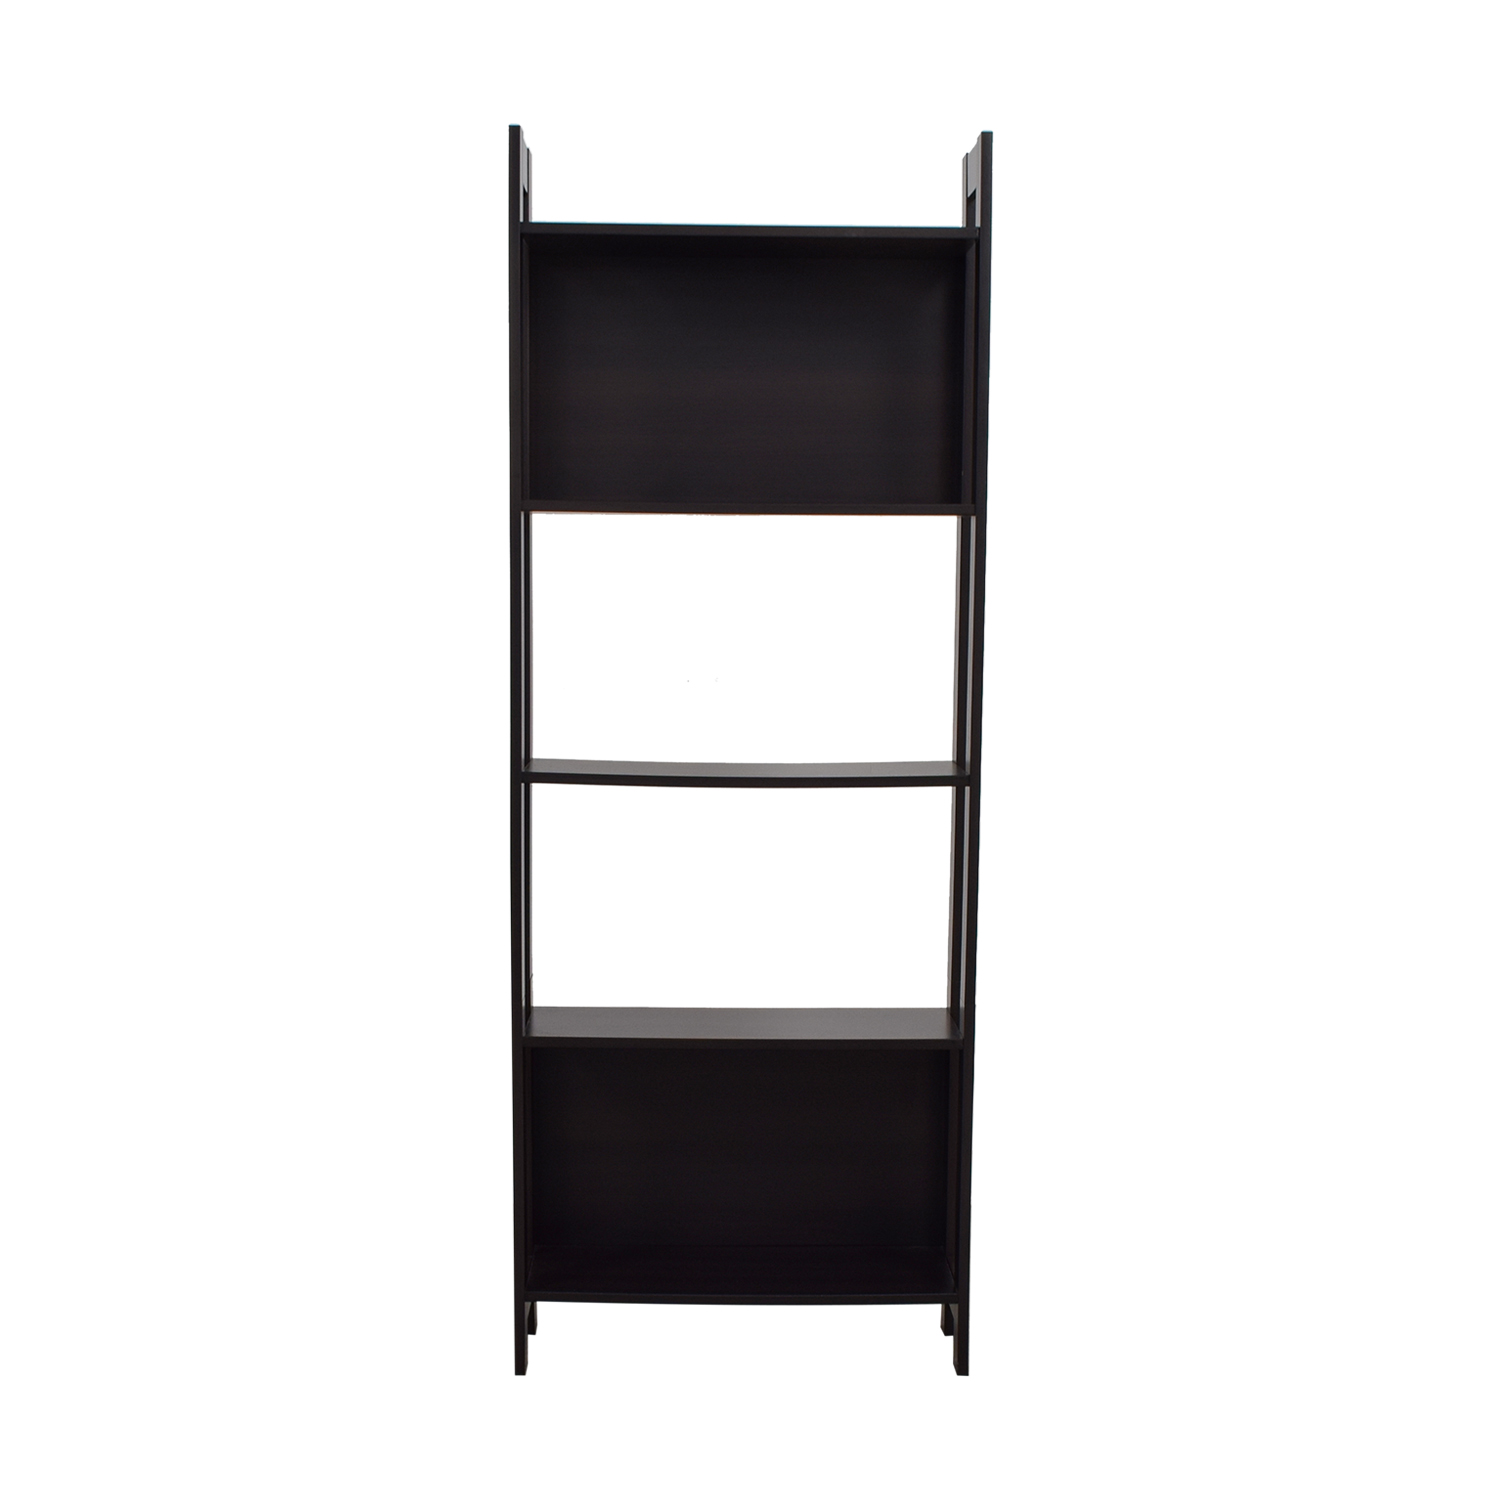 IKEA IKEA LAIVA Bookcase for sale